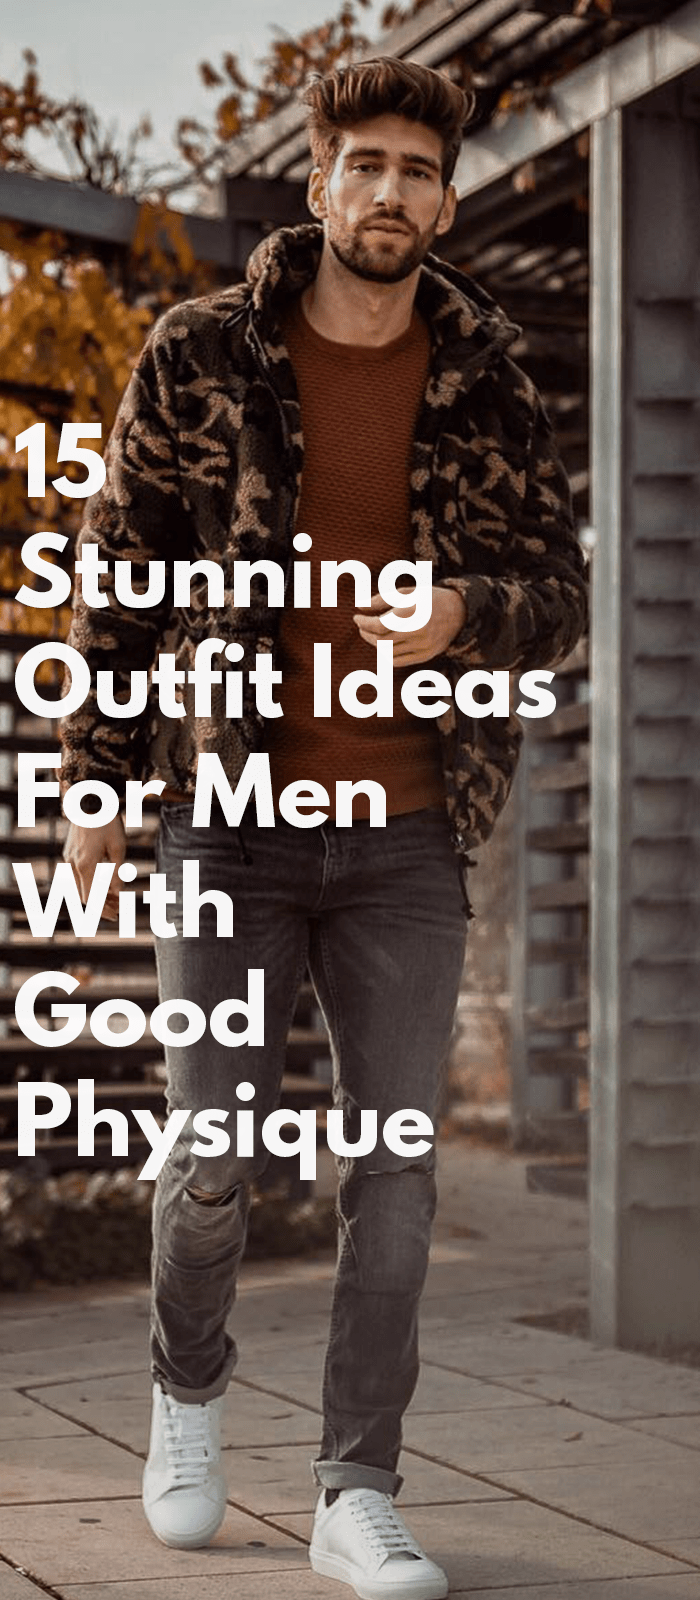 15 Stunning Outfit Ideas For Men With Good Physique.